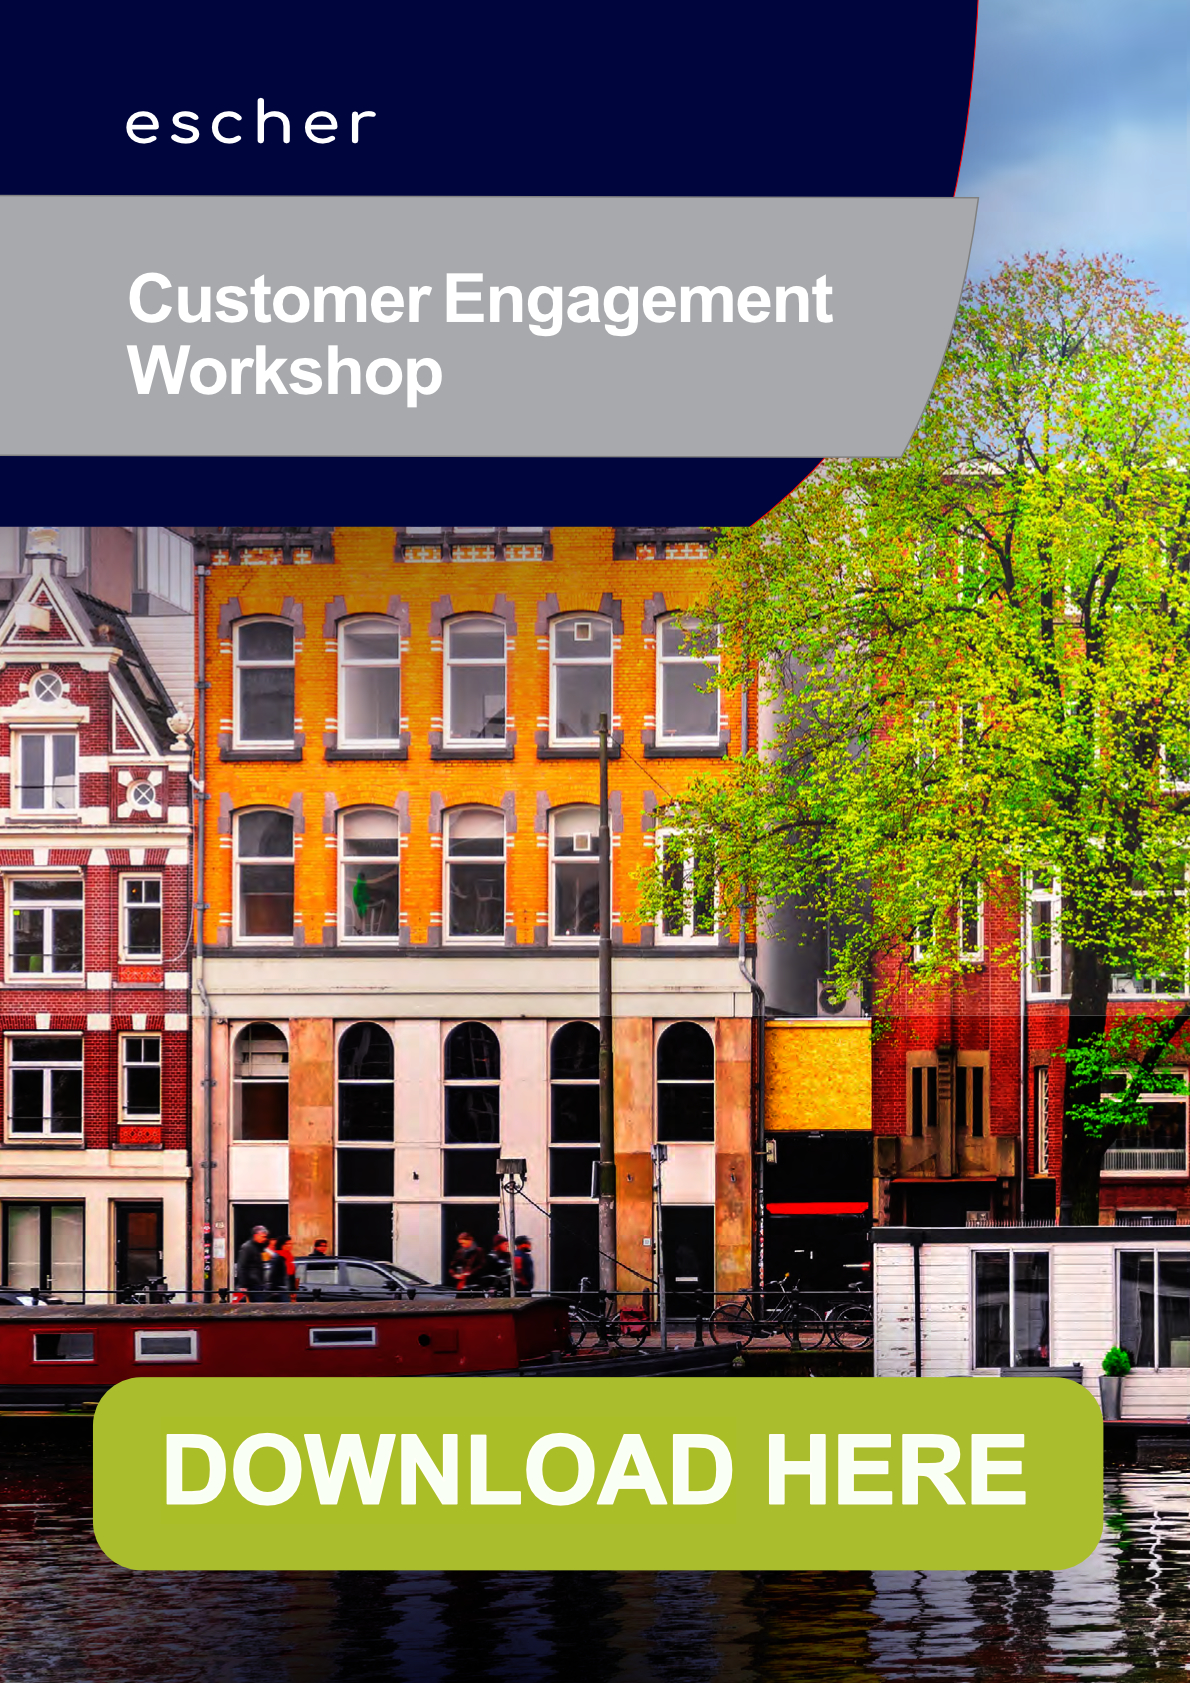 Escher-Customer-Engagement-Worshop